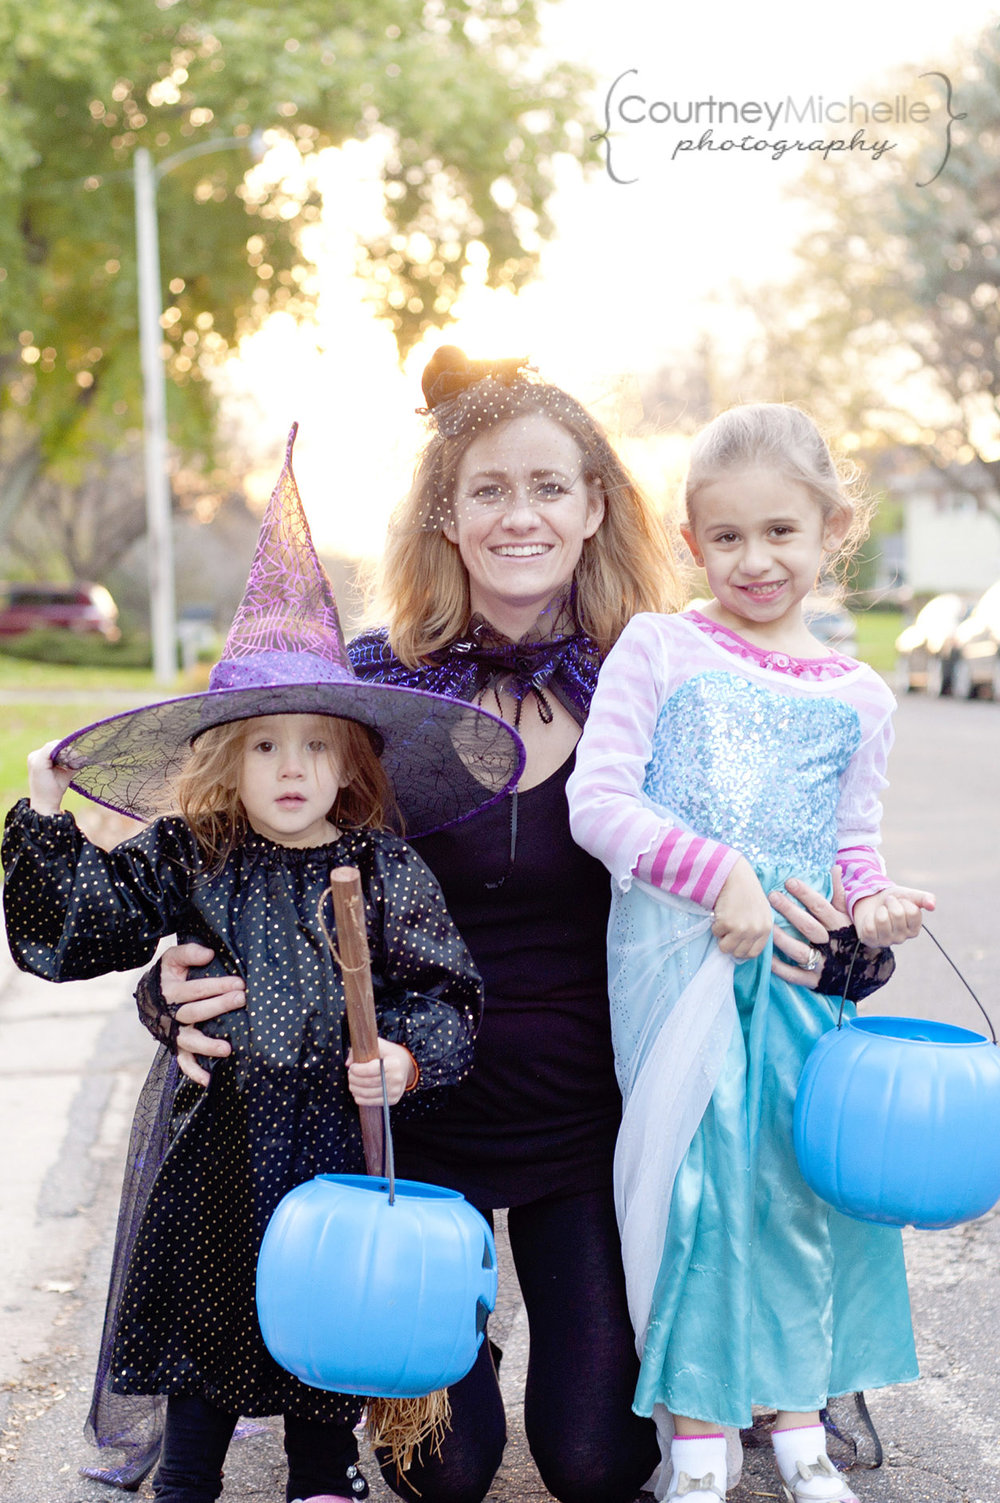 mom-and-daughters-laughing-in-halloween-costumes-lifestyle-photography-by-courtney-laper.jpg